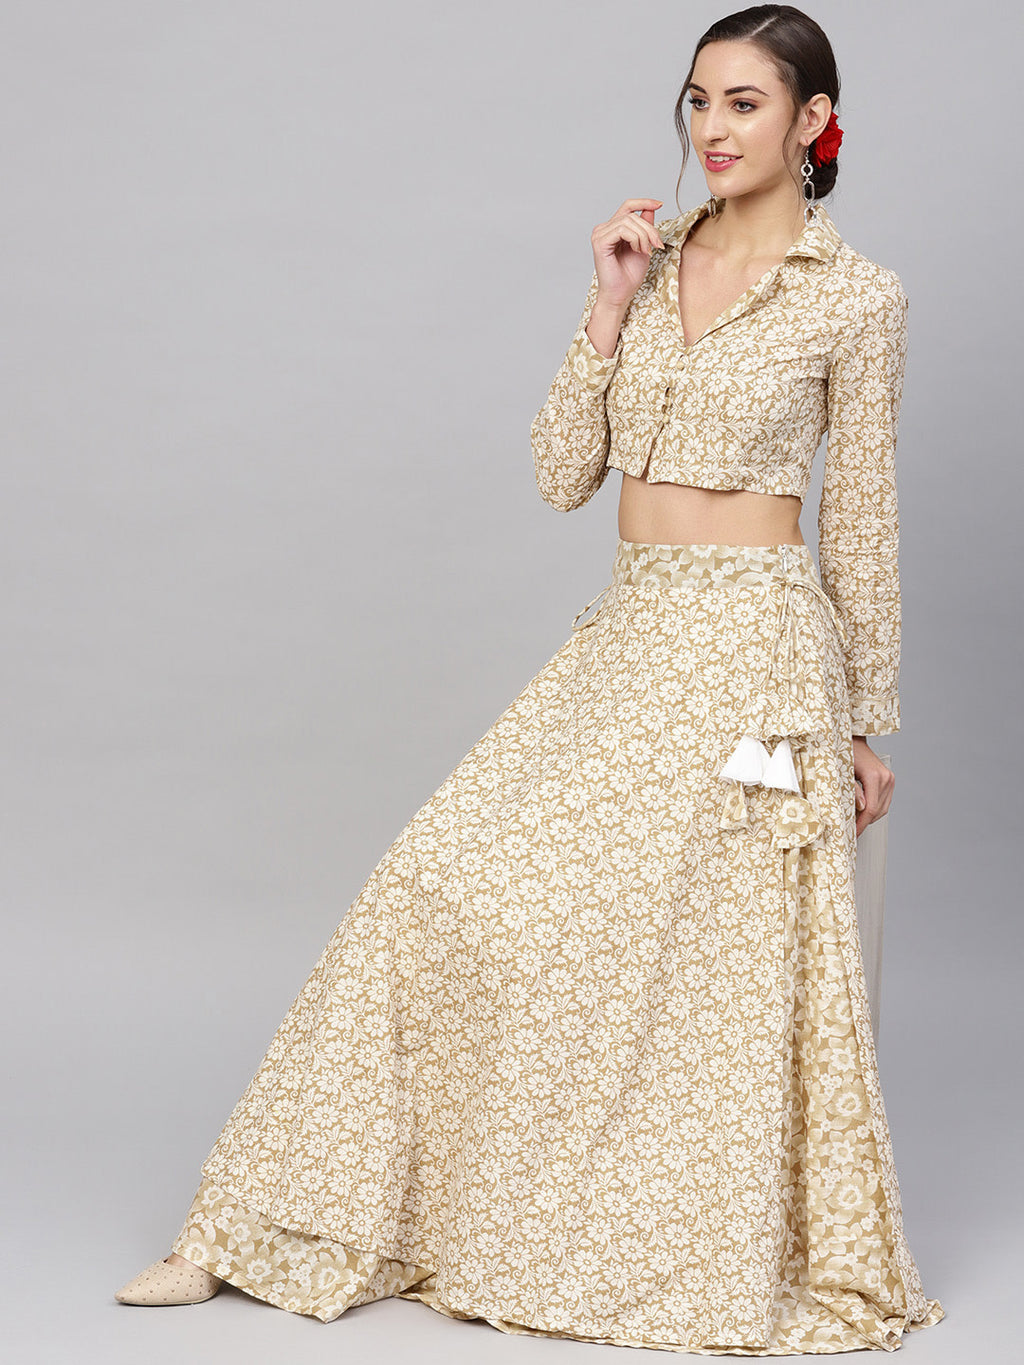 Women Beige & Off White Printed Ready to Wear Lehenga with Blouse